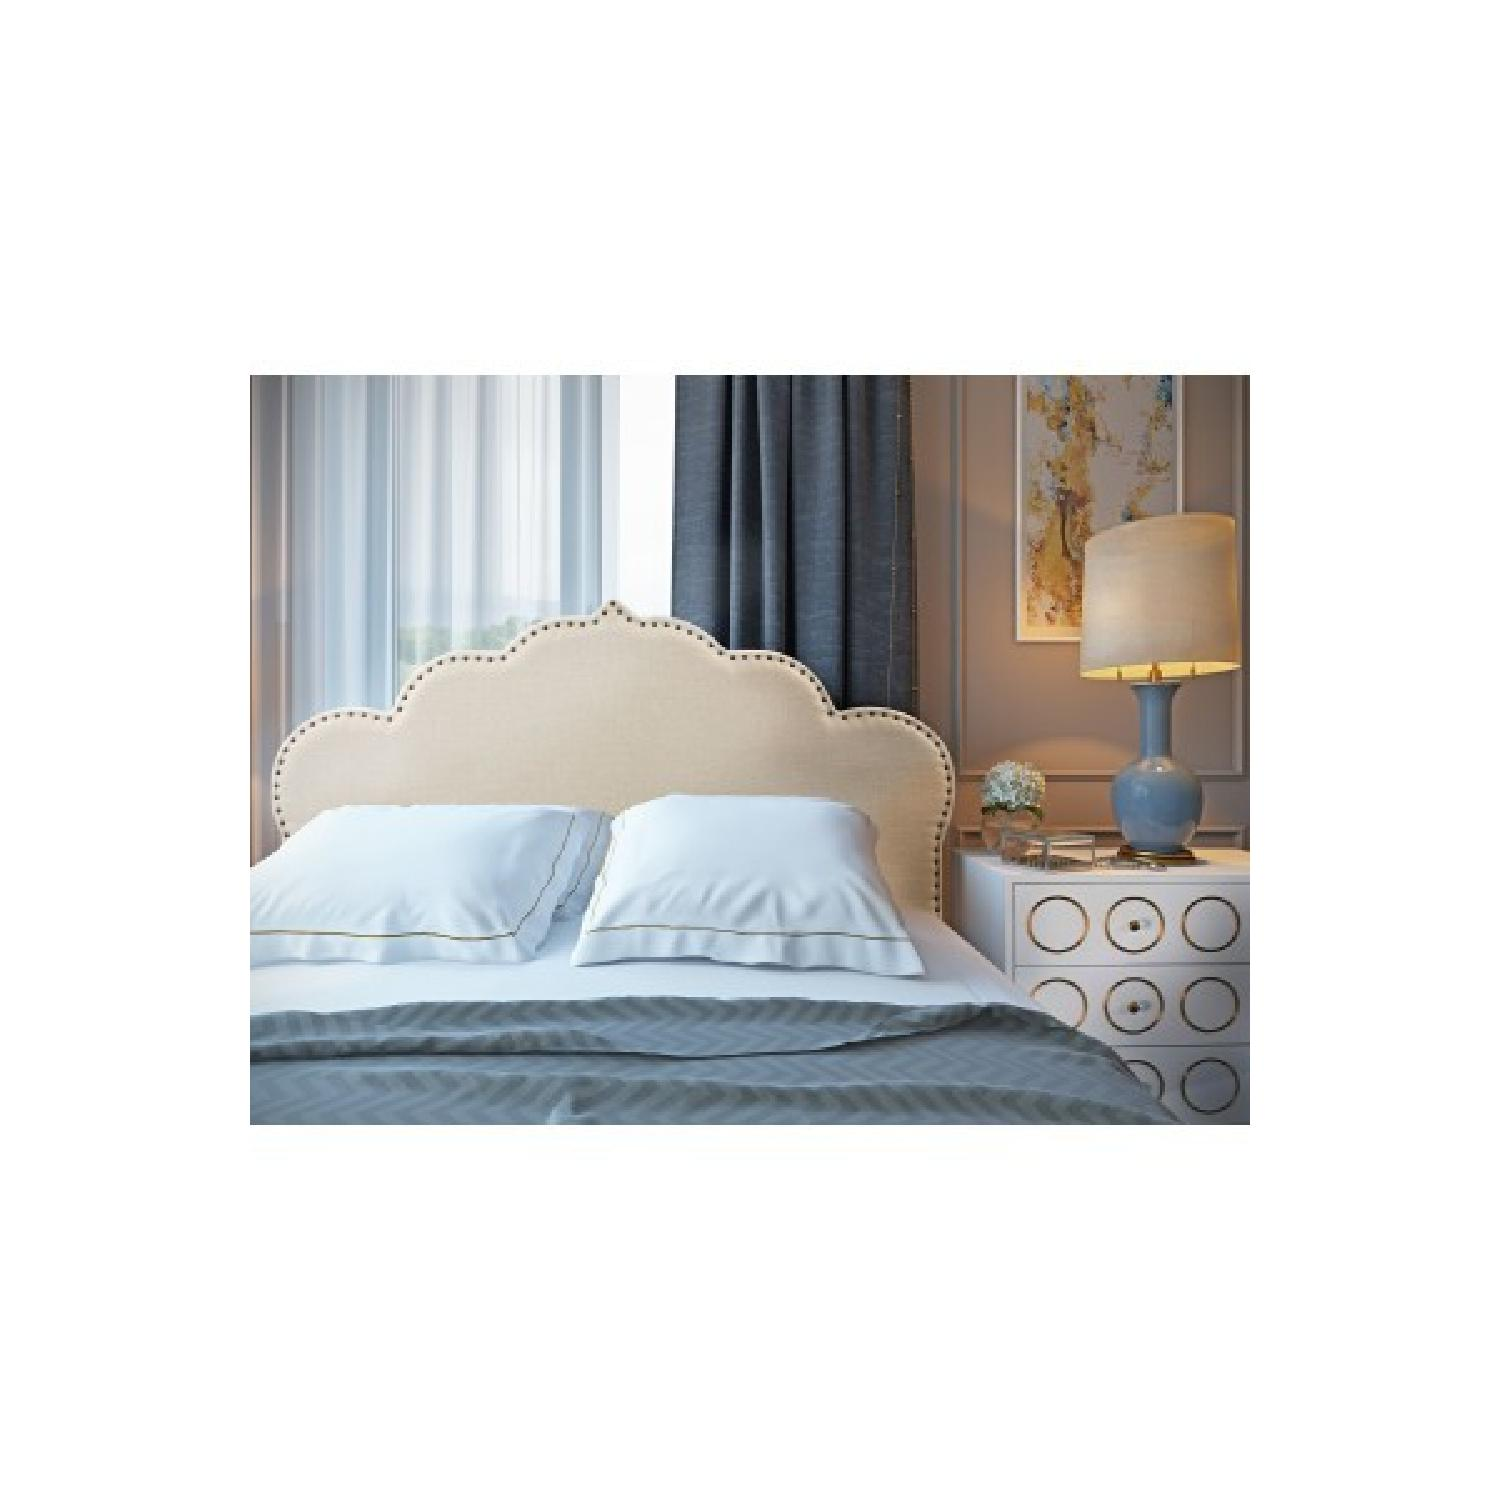 TOV Furniture Noches Twin Headbaord in Beige Linen